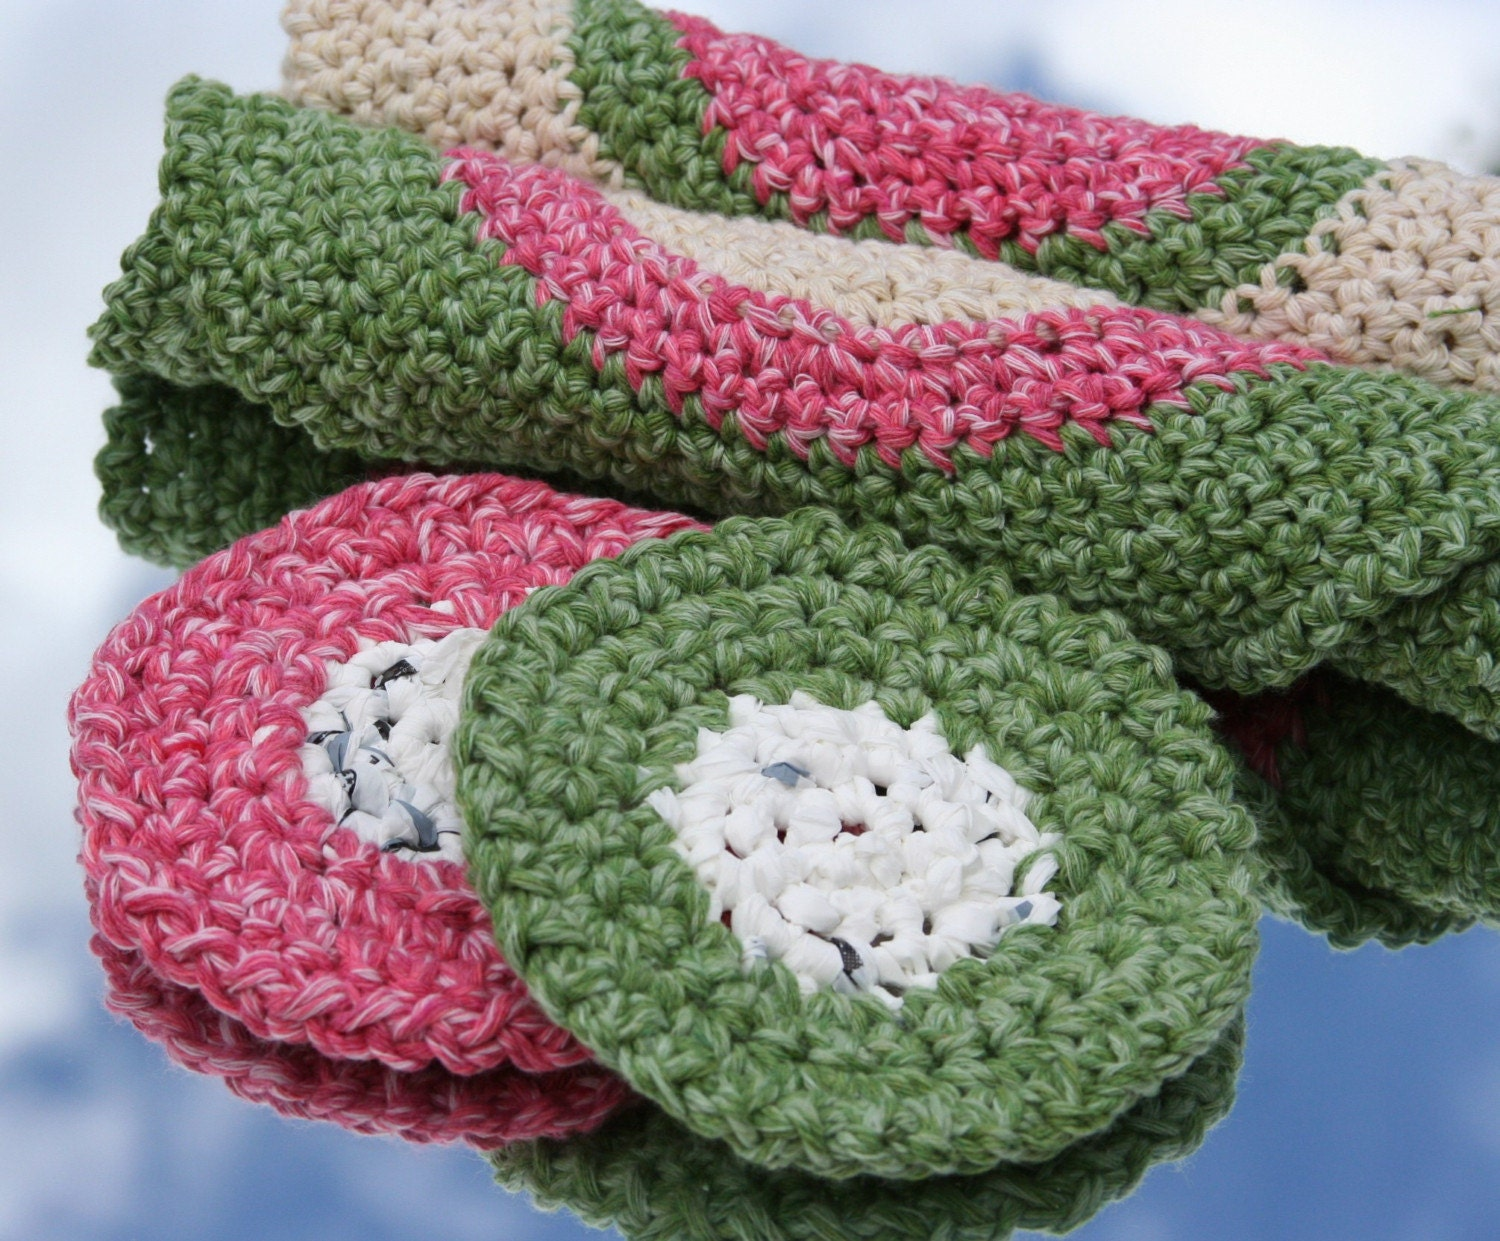 Recycled Materials  Kitchen Cloths & Scrubbers by OlliesBoutique from etsy.com